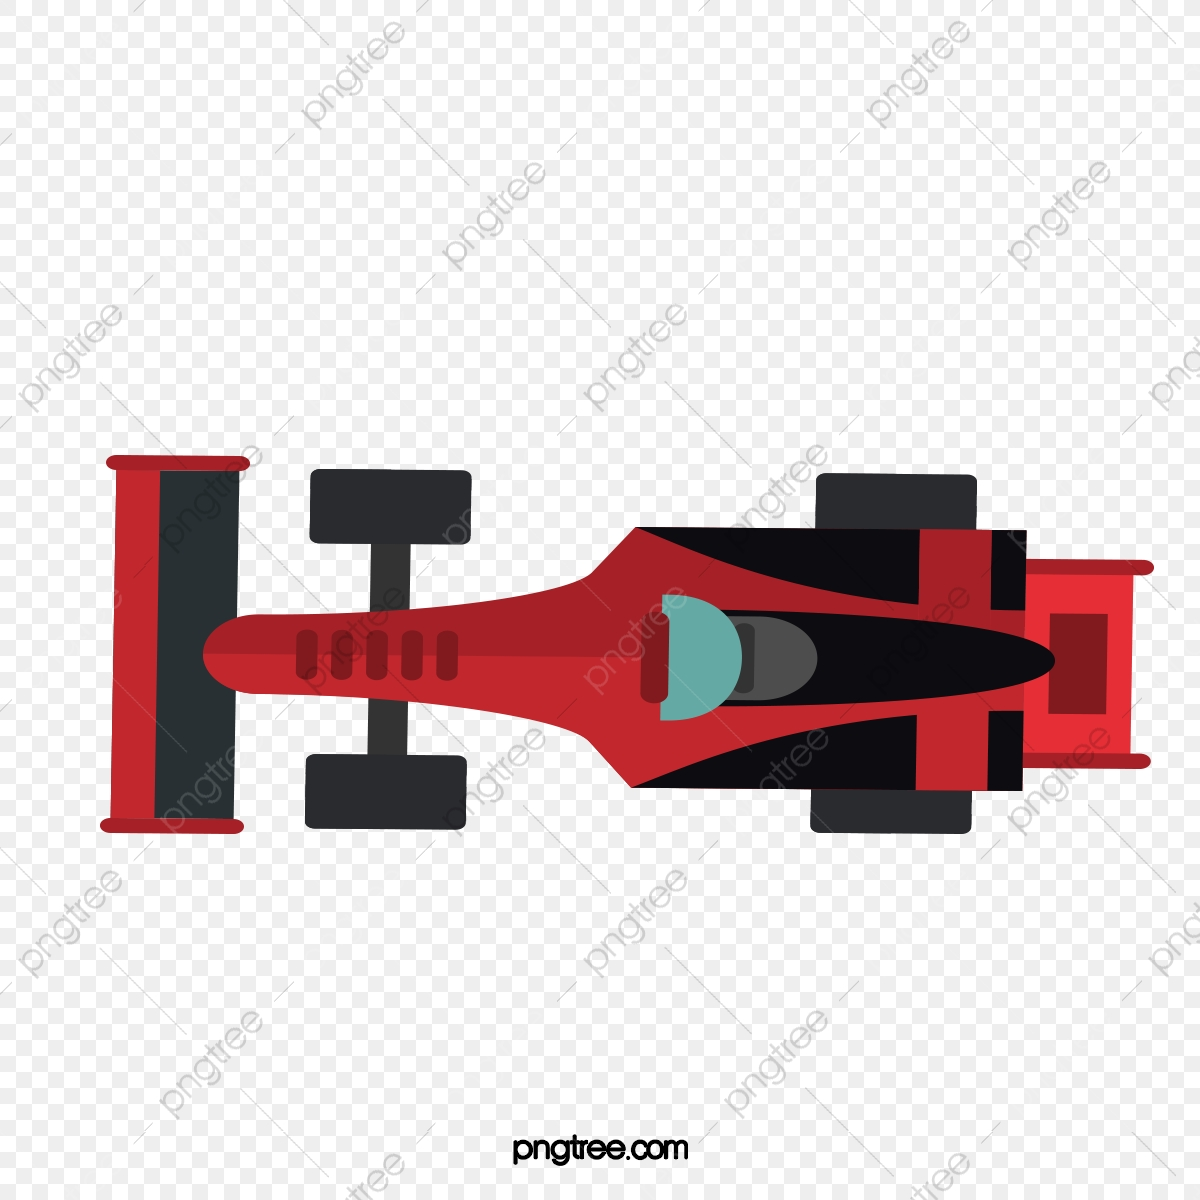 F1 Car Top View Car Clipart Car Overlooking Racing Car Png